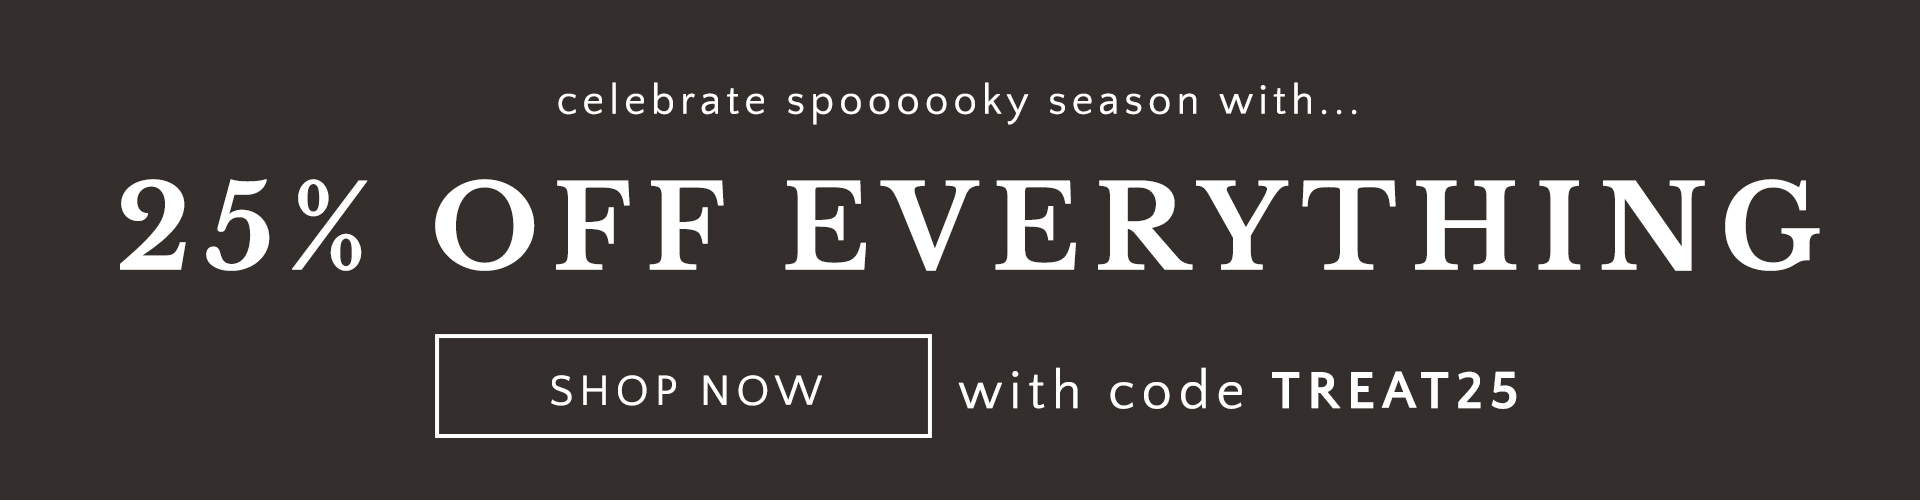 Celebrate spoooooky season with... 25% OFF EVERYTHING SHOP NOW with code TREAT25